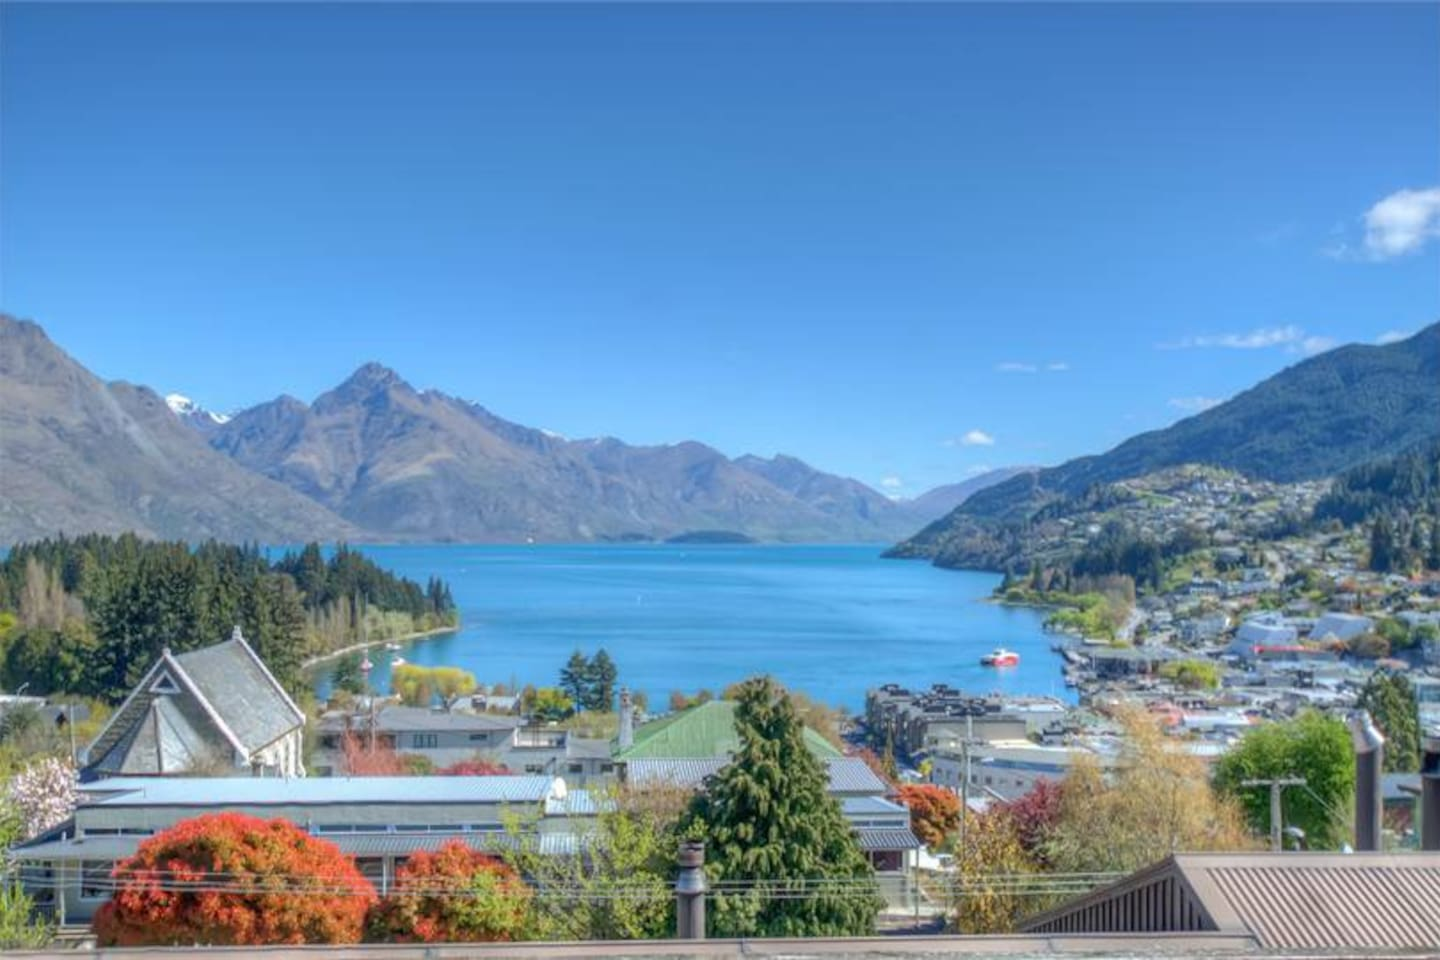 Welcome to Q-Crib - your Queenstown home away from home just 700mtrs from the lake!